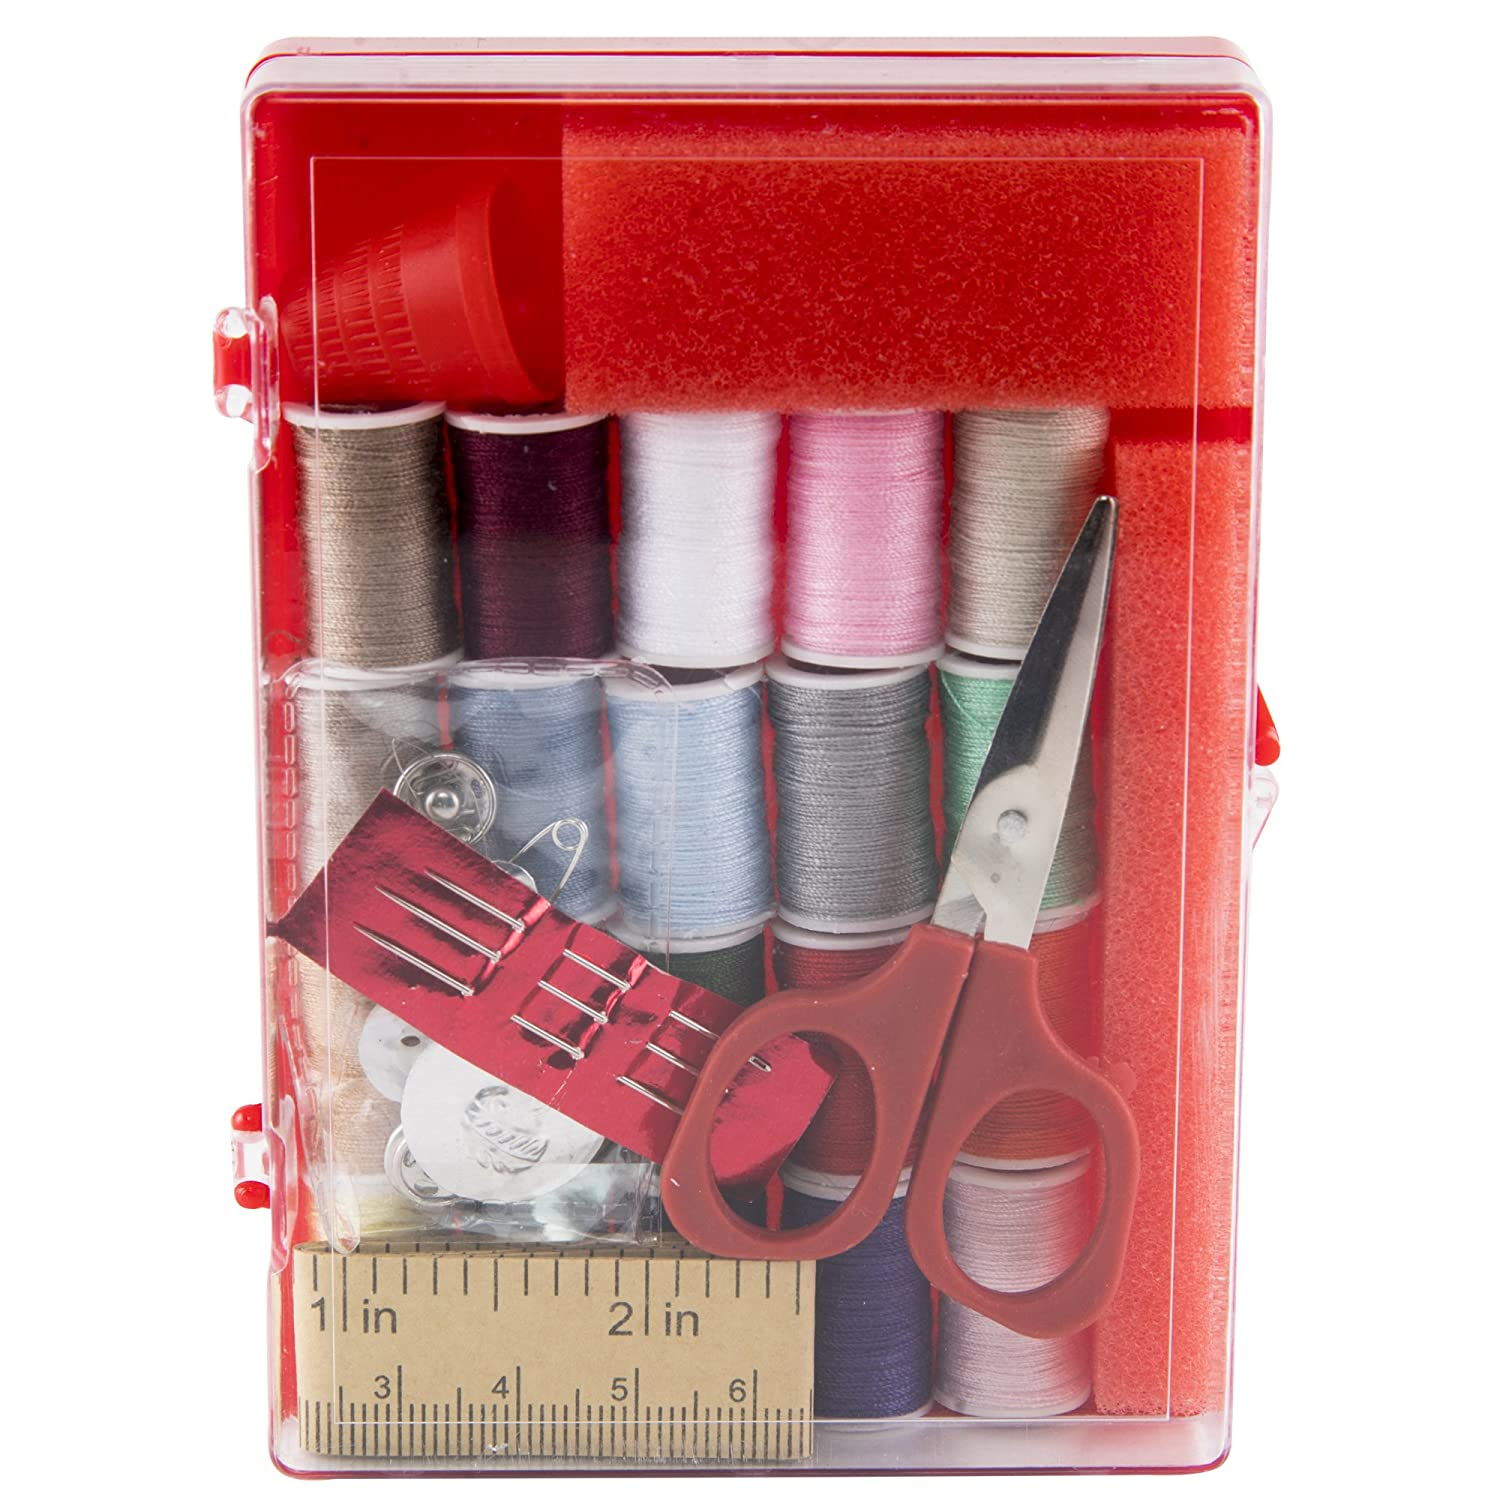 SINGER 2002108 Sewing Kit in Storage Box Dyno Merchandise 00279